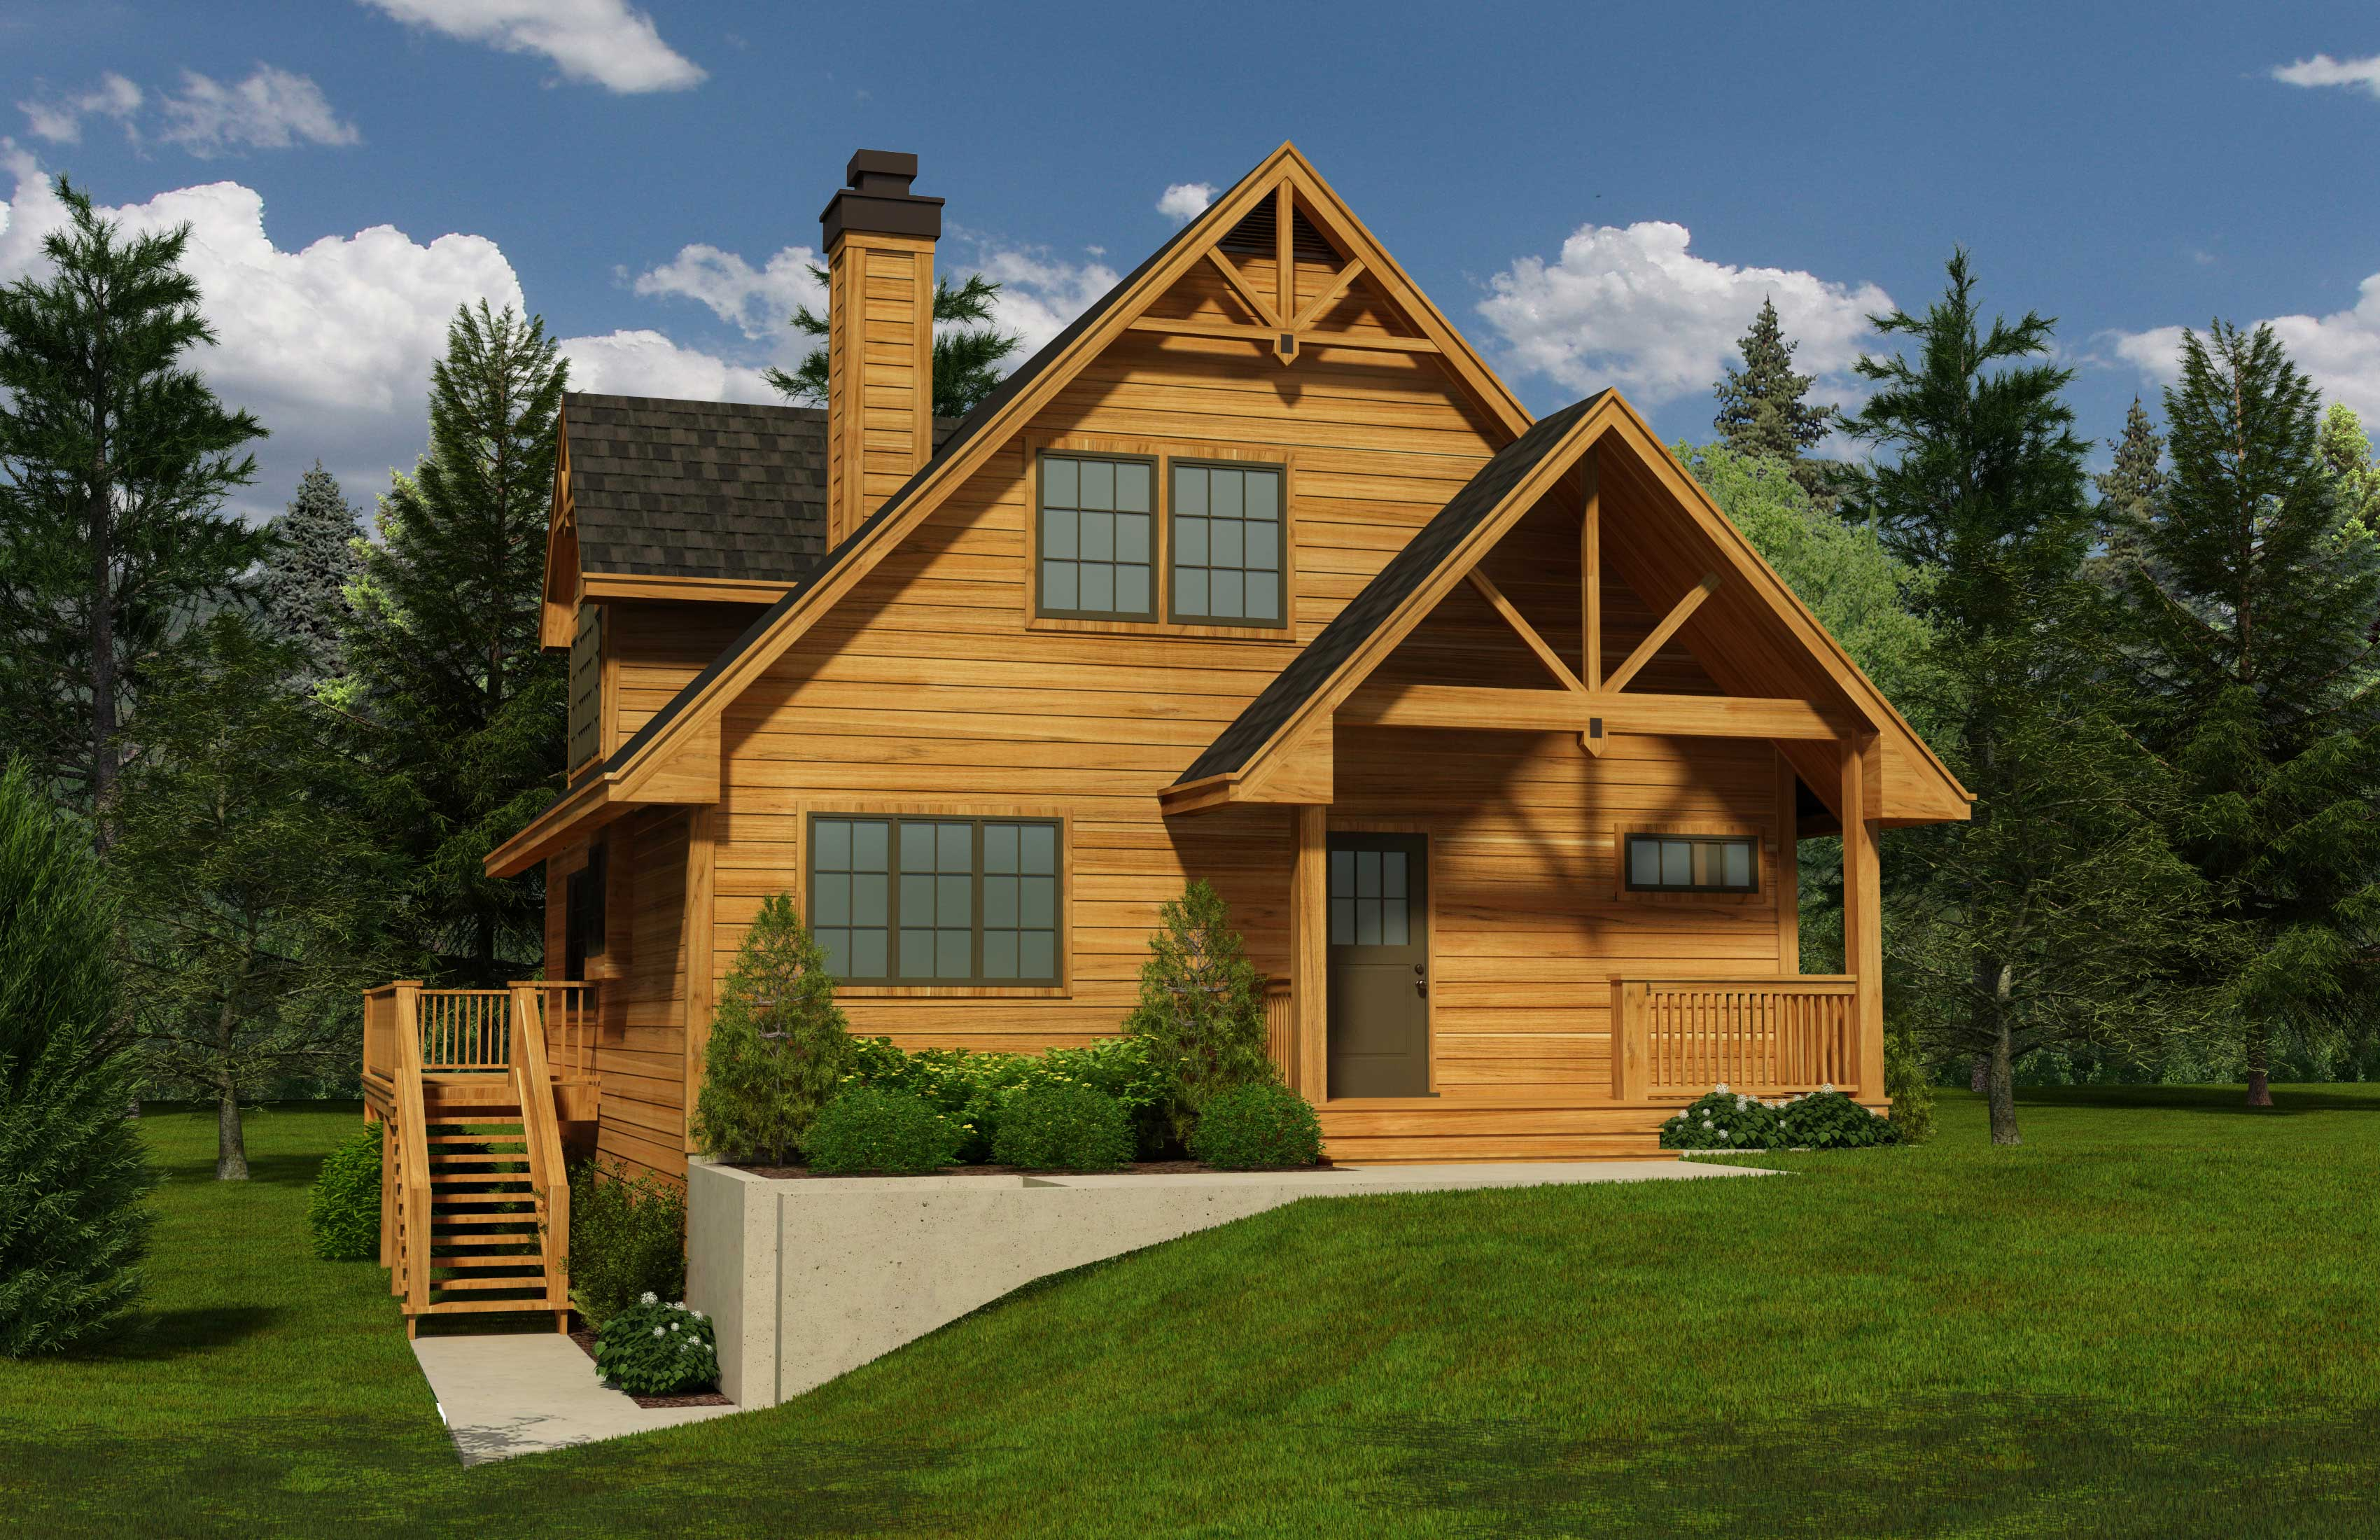 building plans for cabins 3 bedrm 1741 sq ft craftsman house plan 160 1018 9919